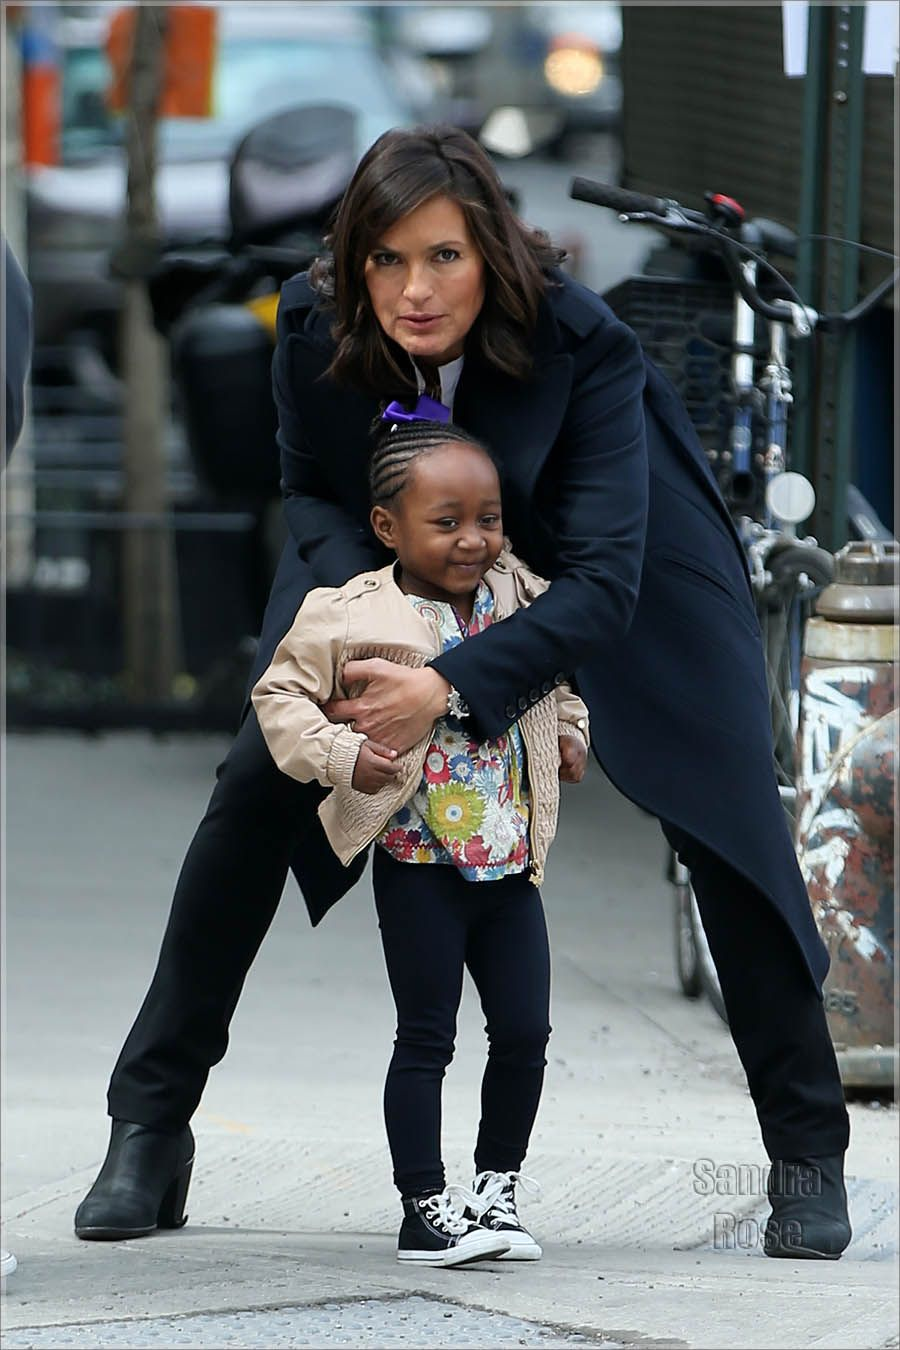 Actress Mariska Hargitay Plays Supermom With Her Adorable Adopted